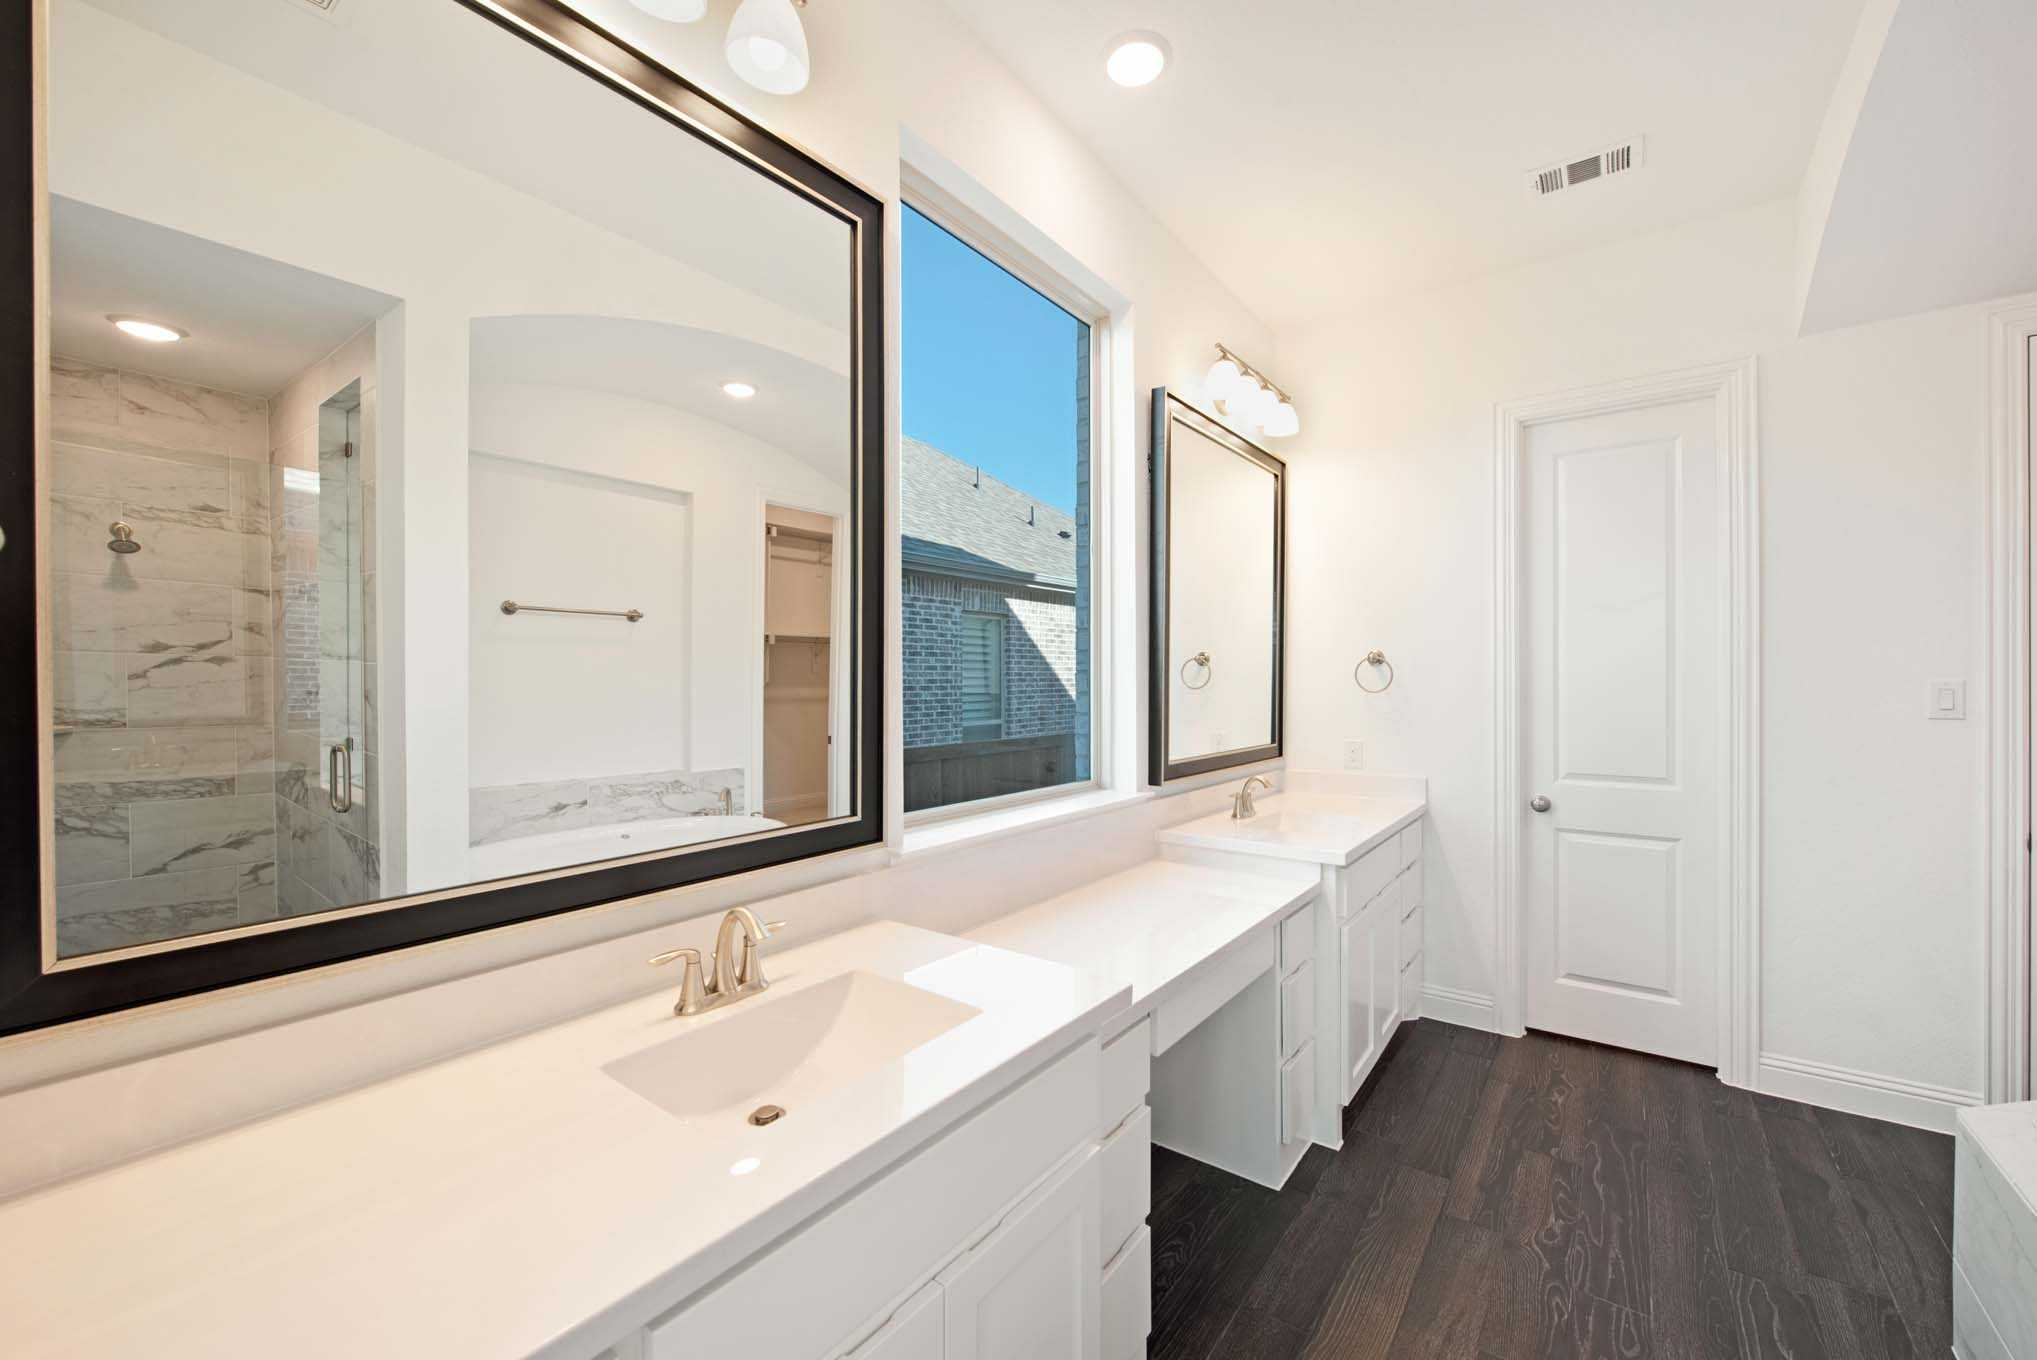 Bathroom featured in the Plan 220 By Highland Homes in Austin, TX